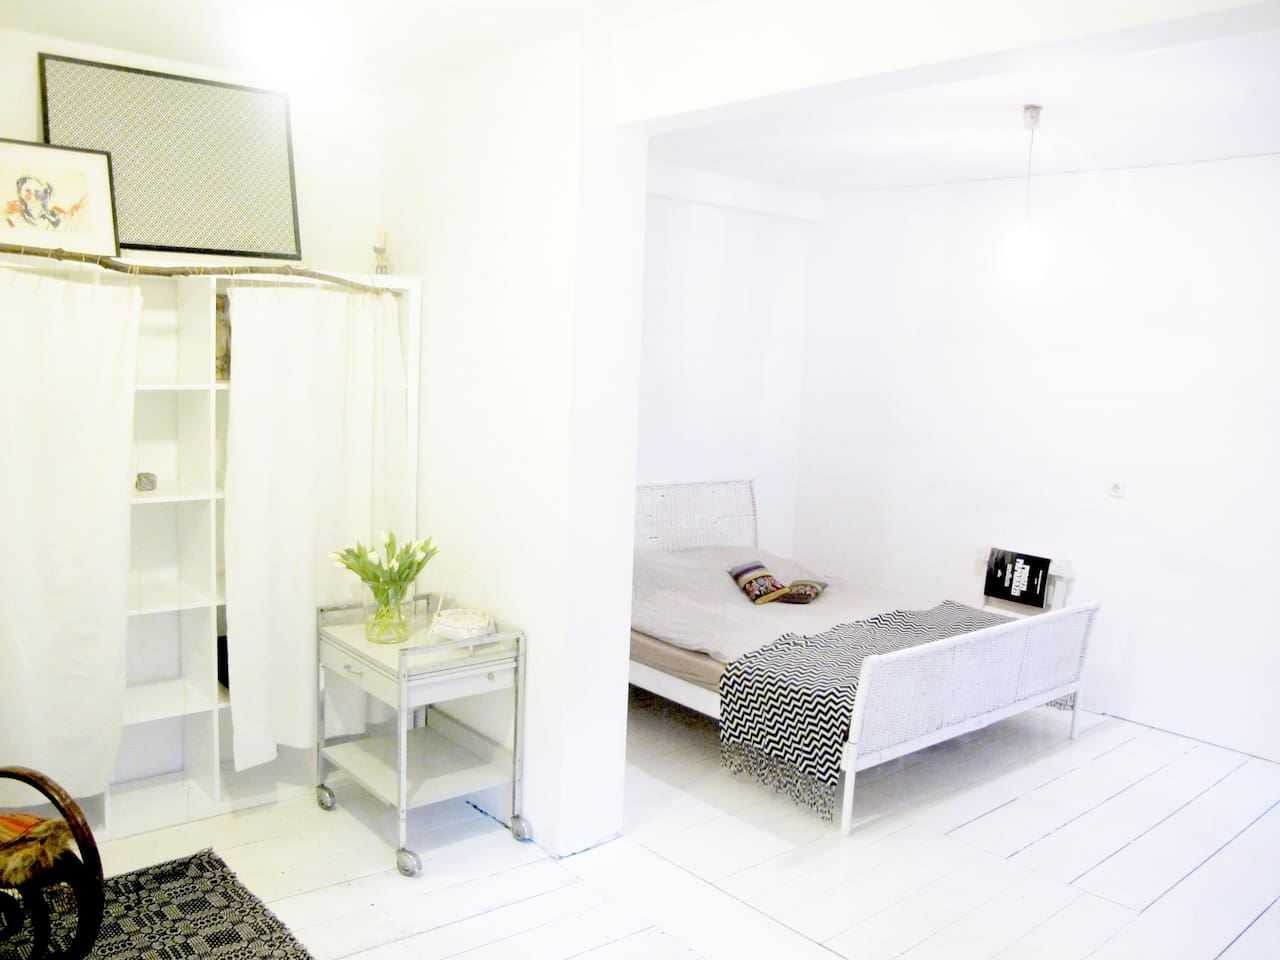 Room overview. Clean spacious room, white and minimal, with few decorative craft elements and bits of Berliner contemporary art and vintage finds.